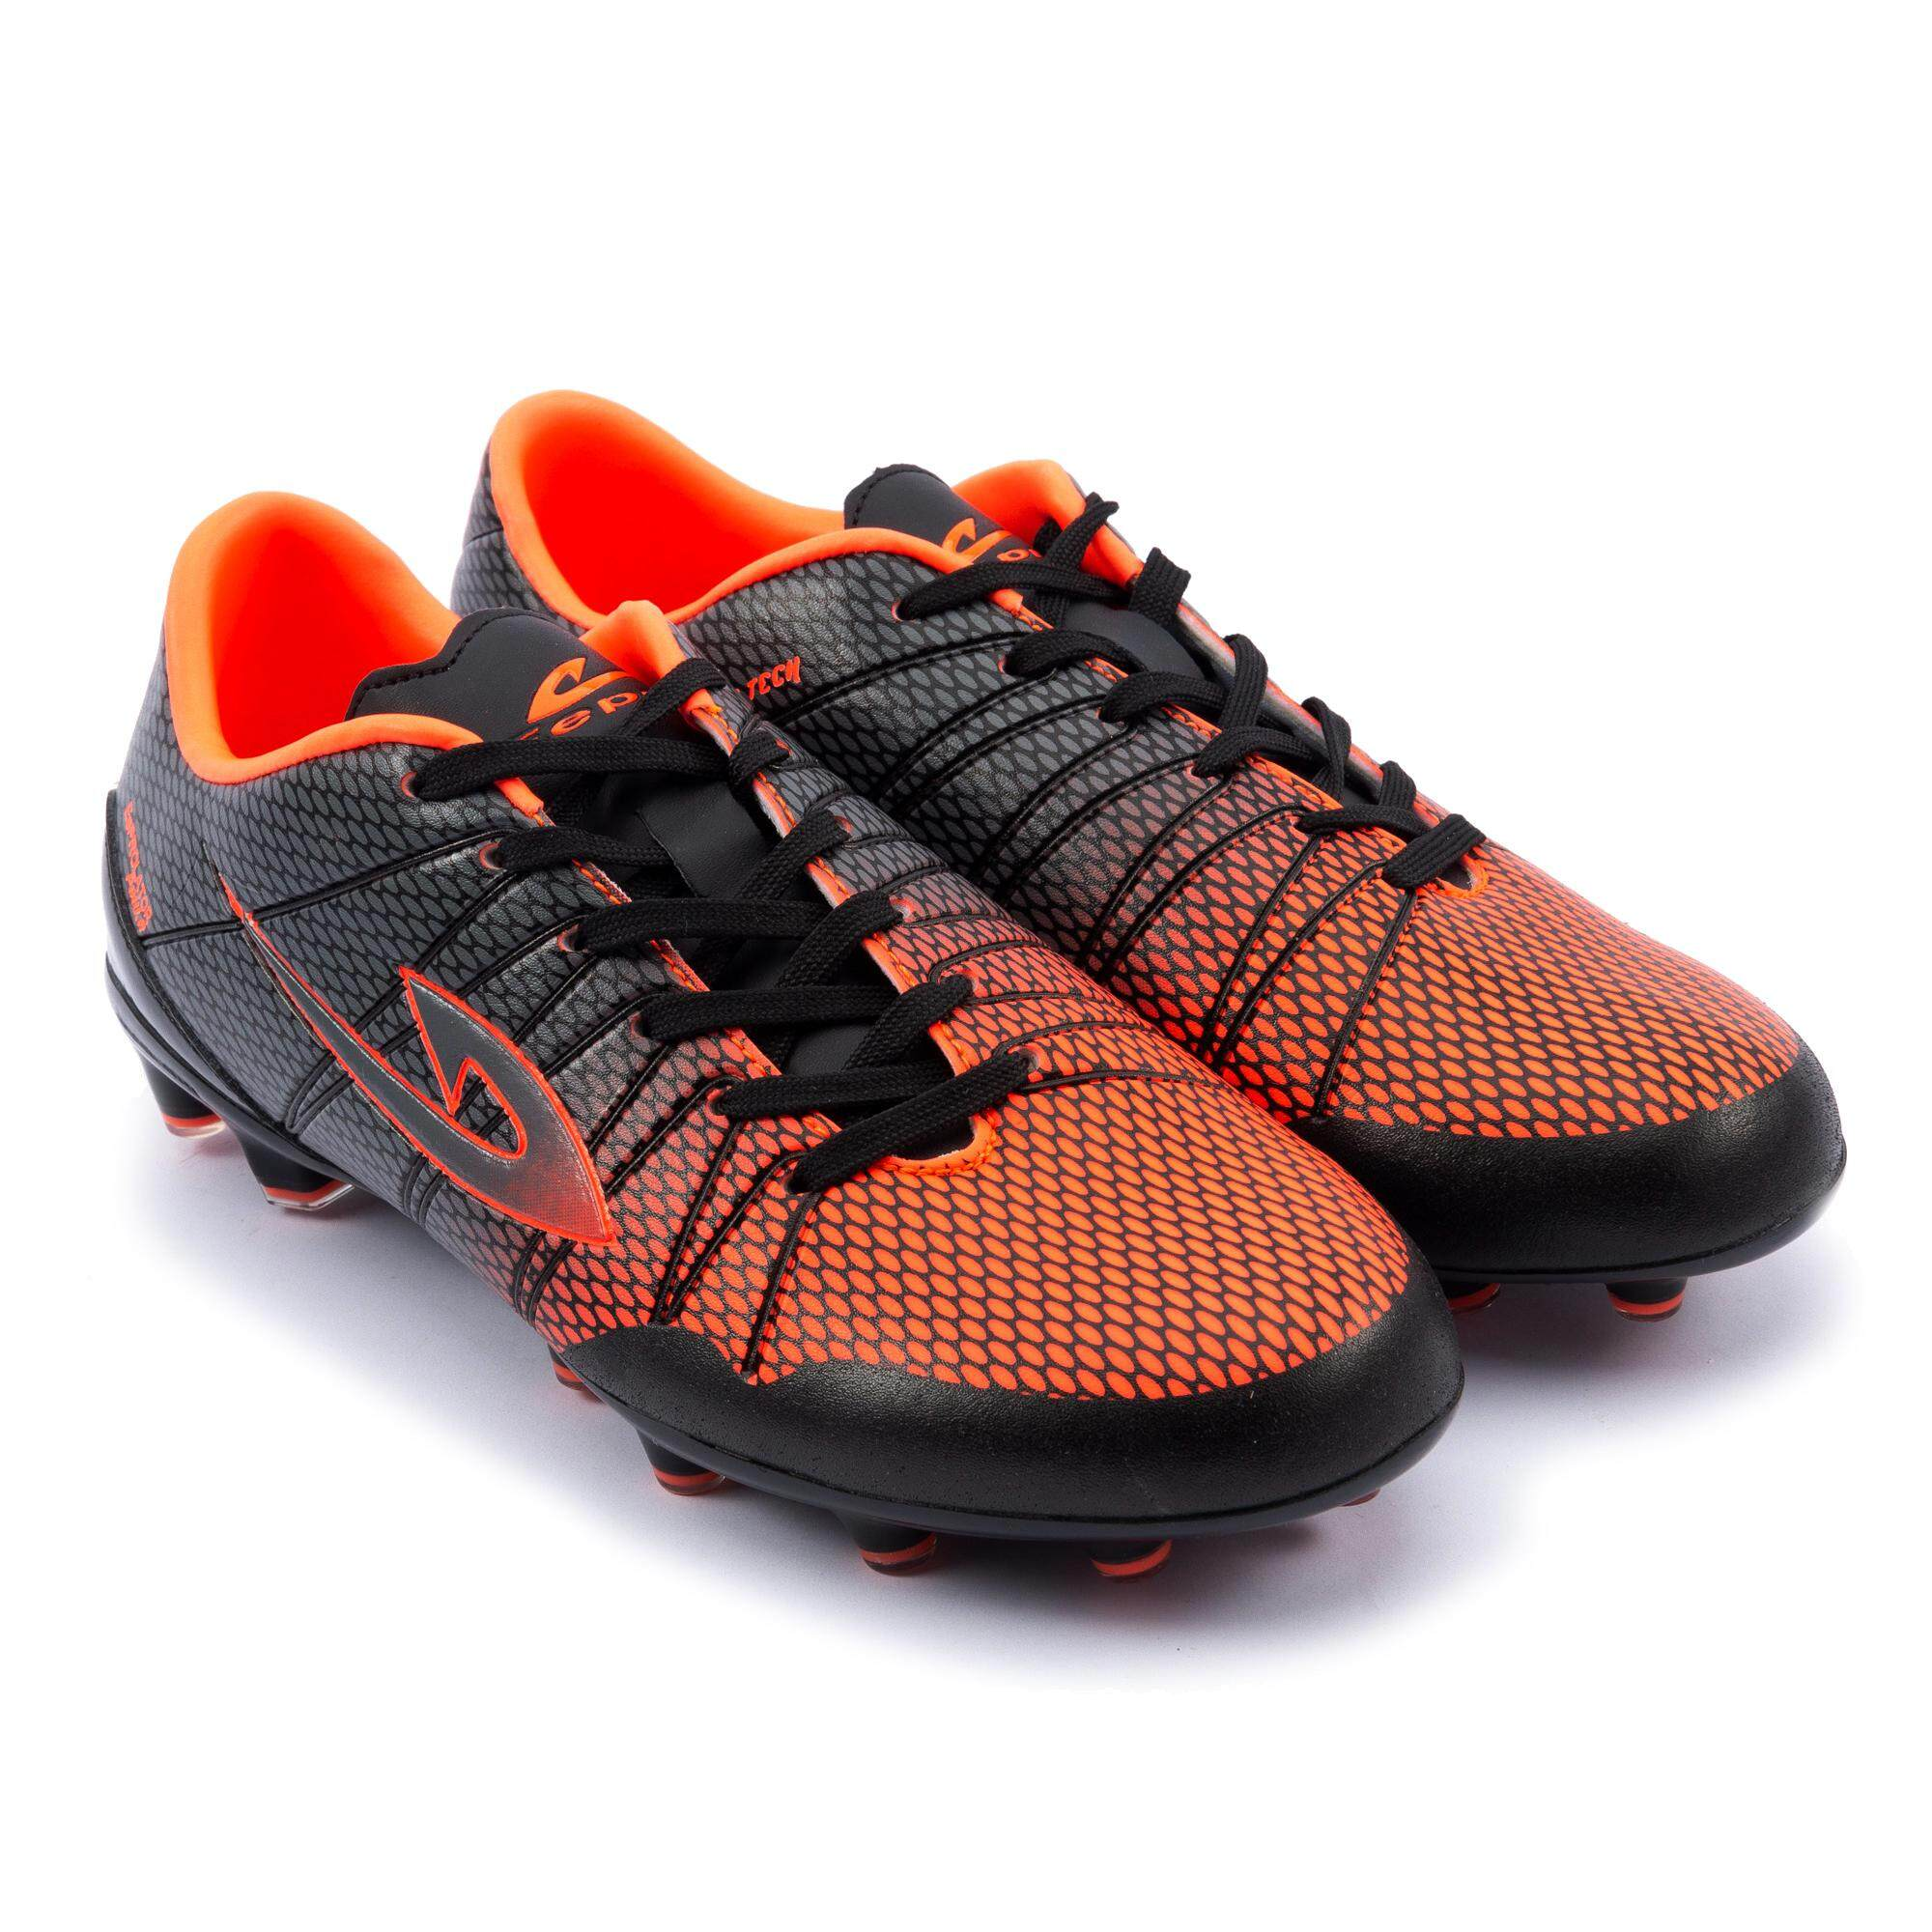 519787917261 Men s Football Shoes - Buy Men s Football Shoes at Best Price in ...